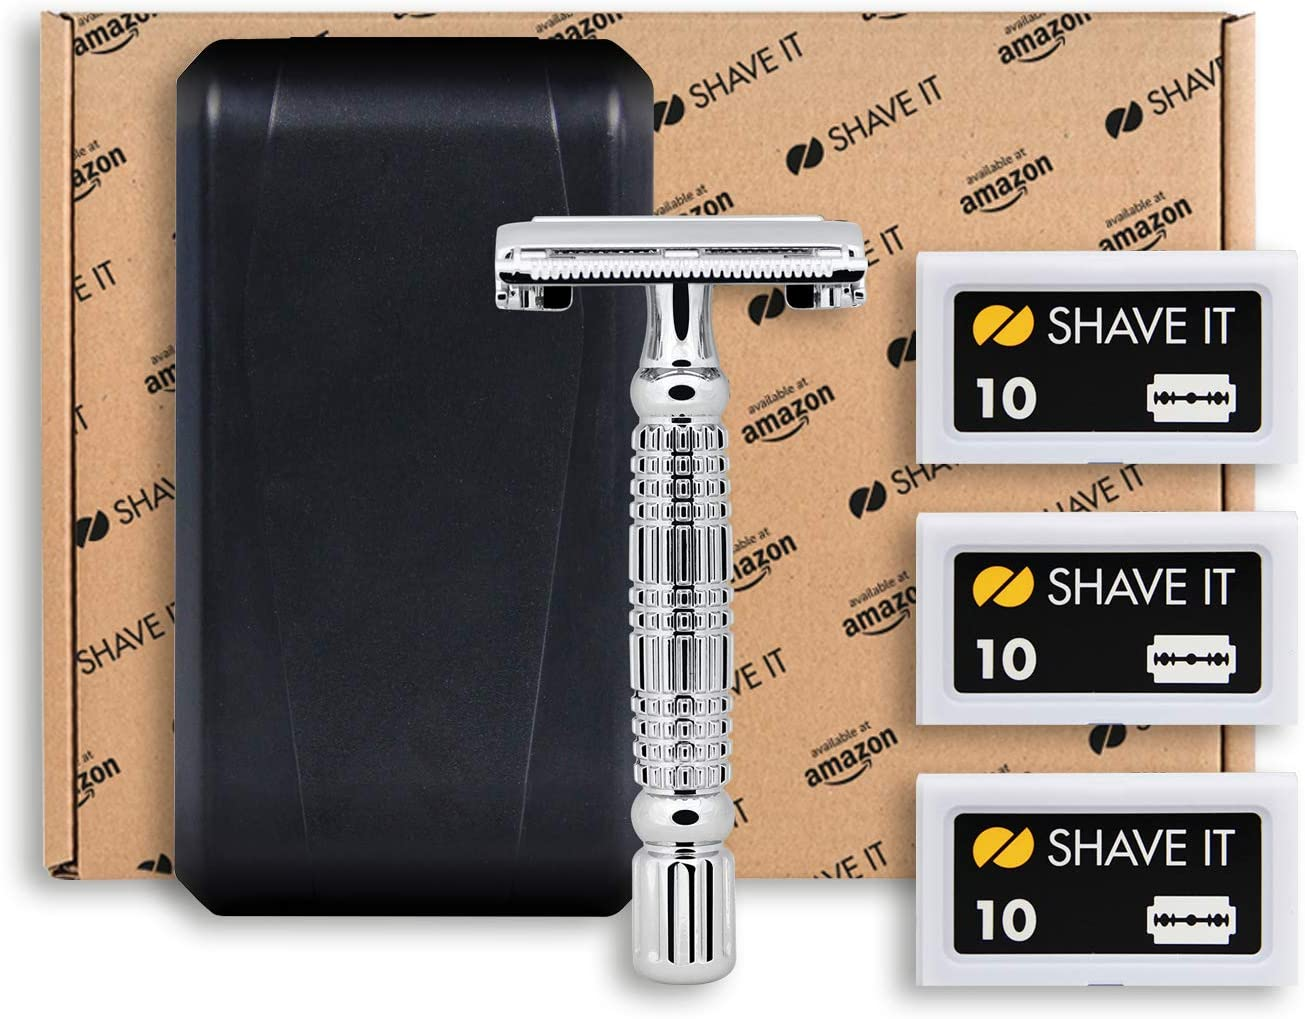 Shave it Maquinilla de afeitar Starter Kit